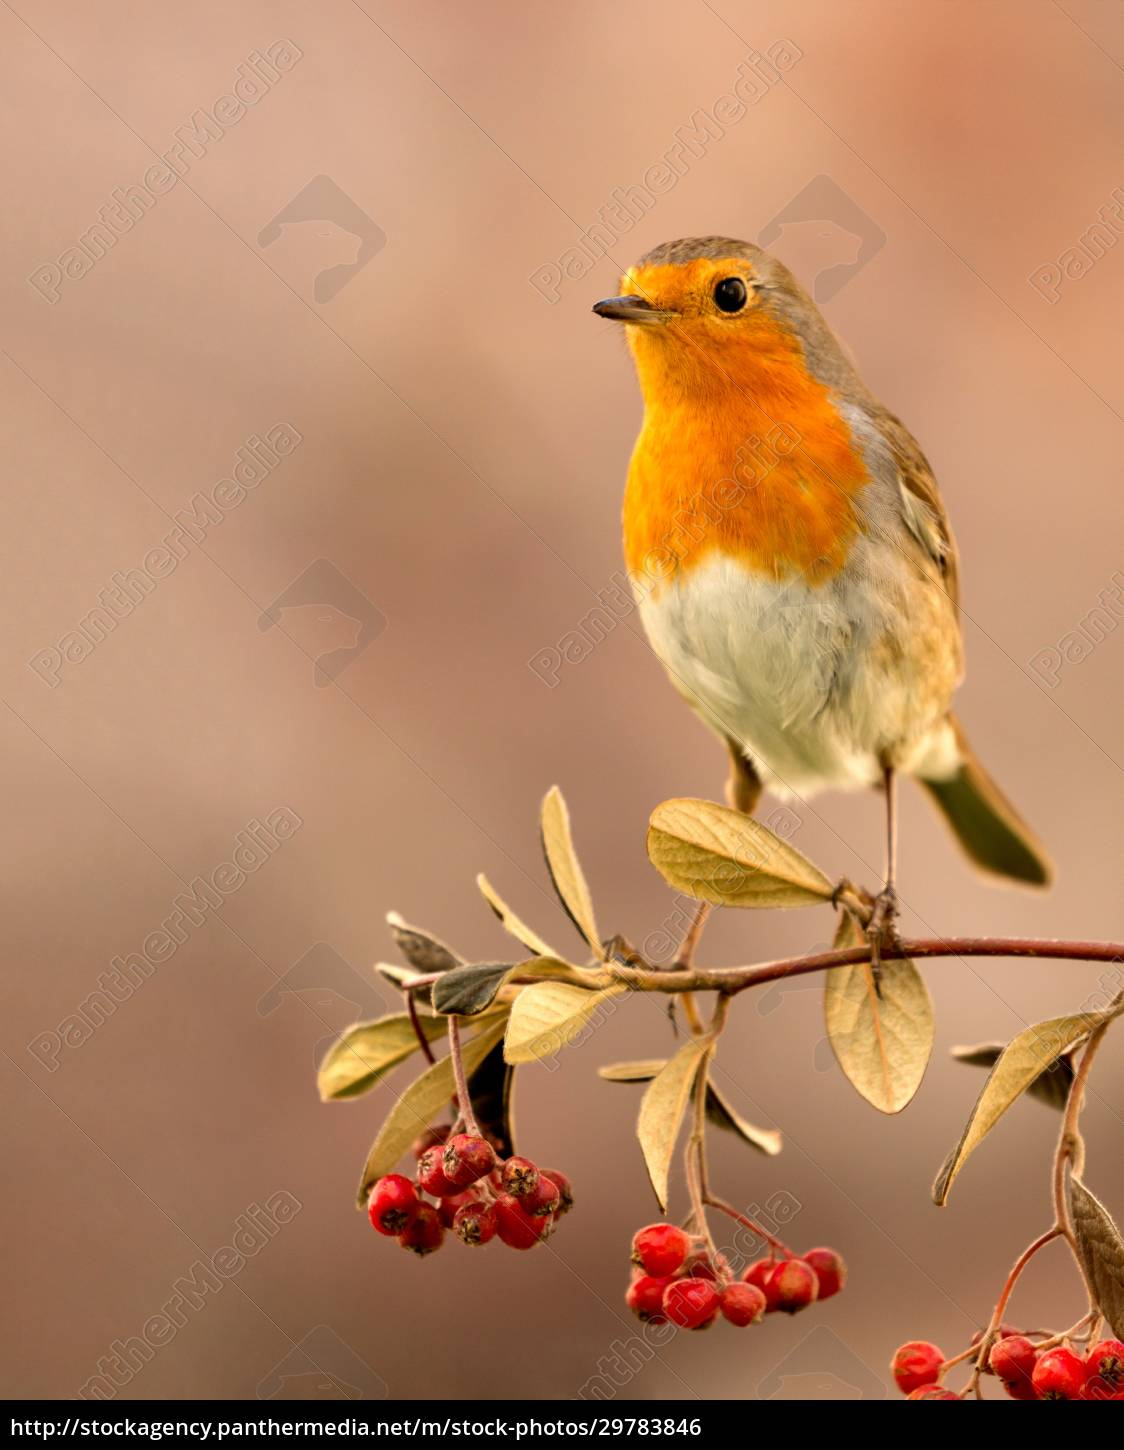 pretty, bird, with, a, nice, red - 29783846